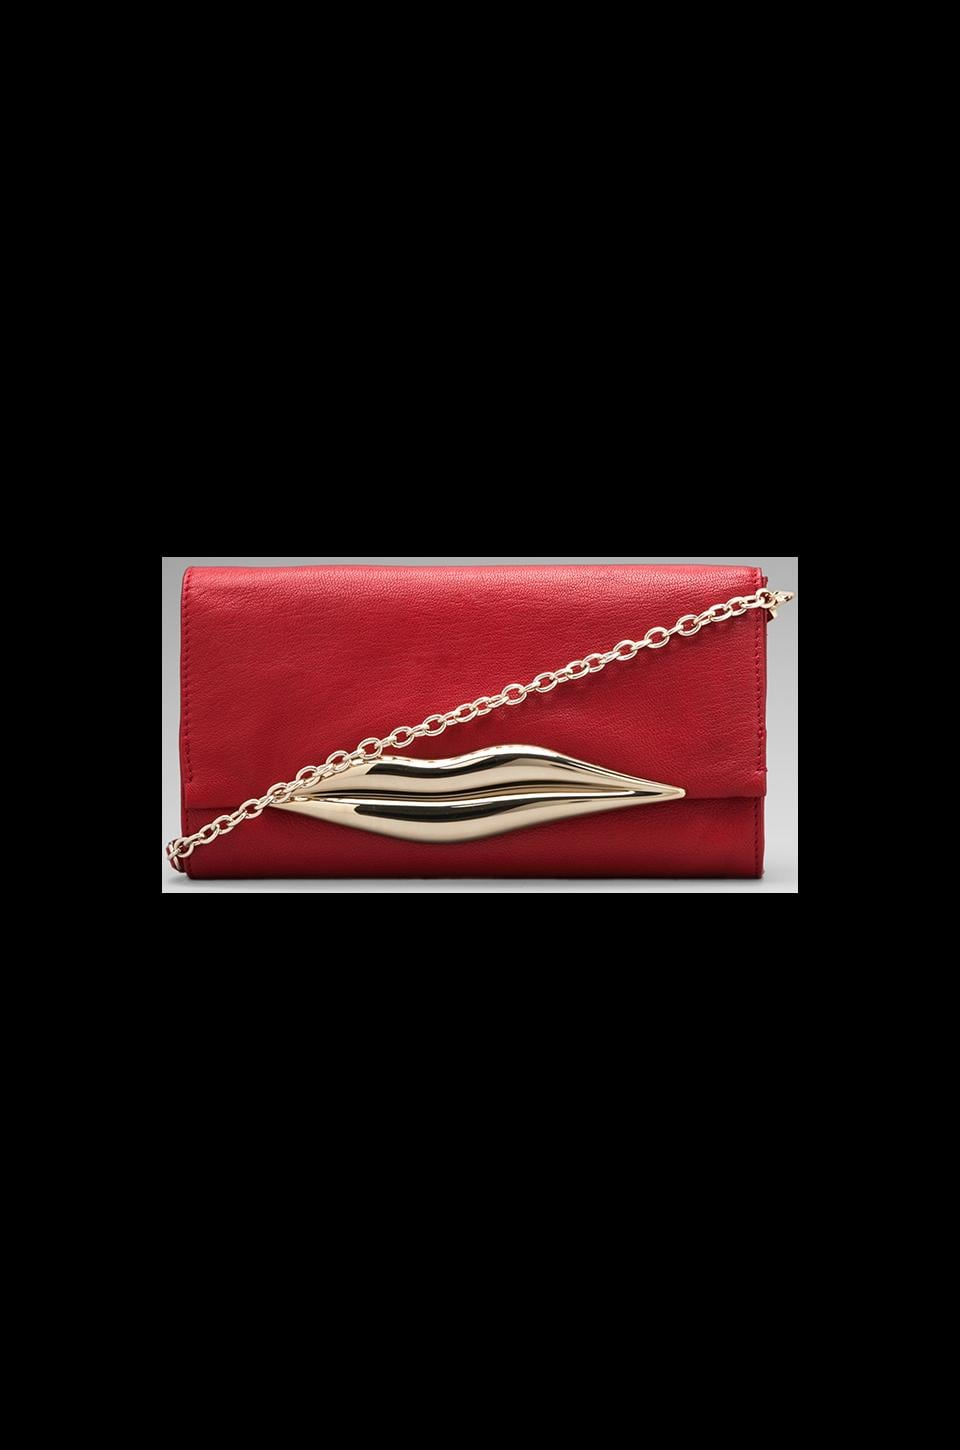 Diane von Furstenberg Flirty Leather Soft Clutch in Crimson